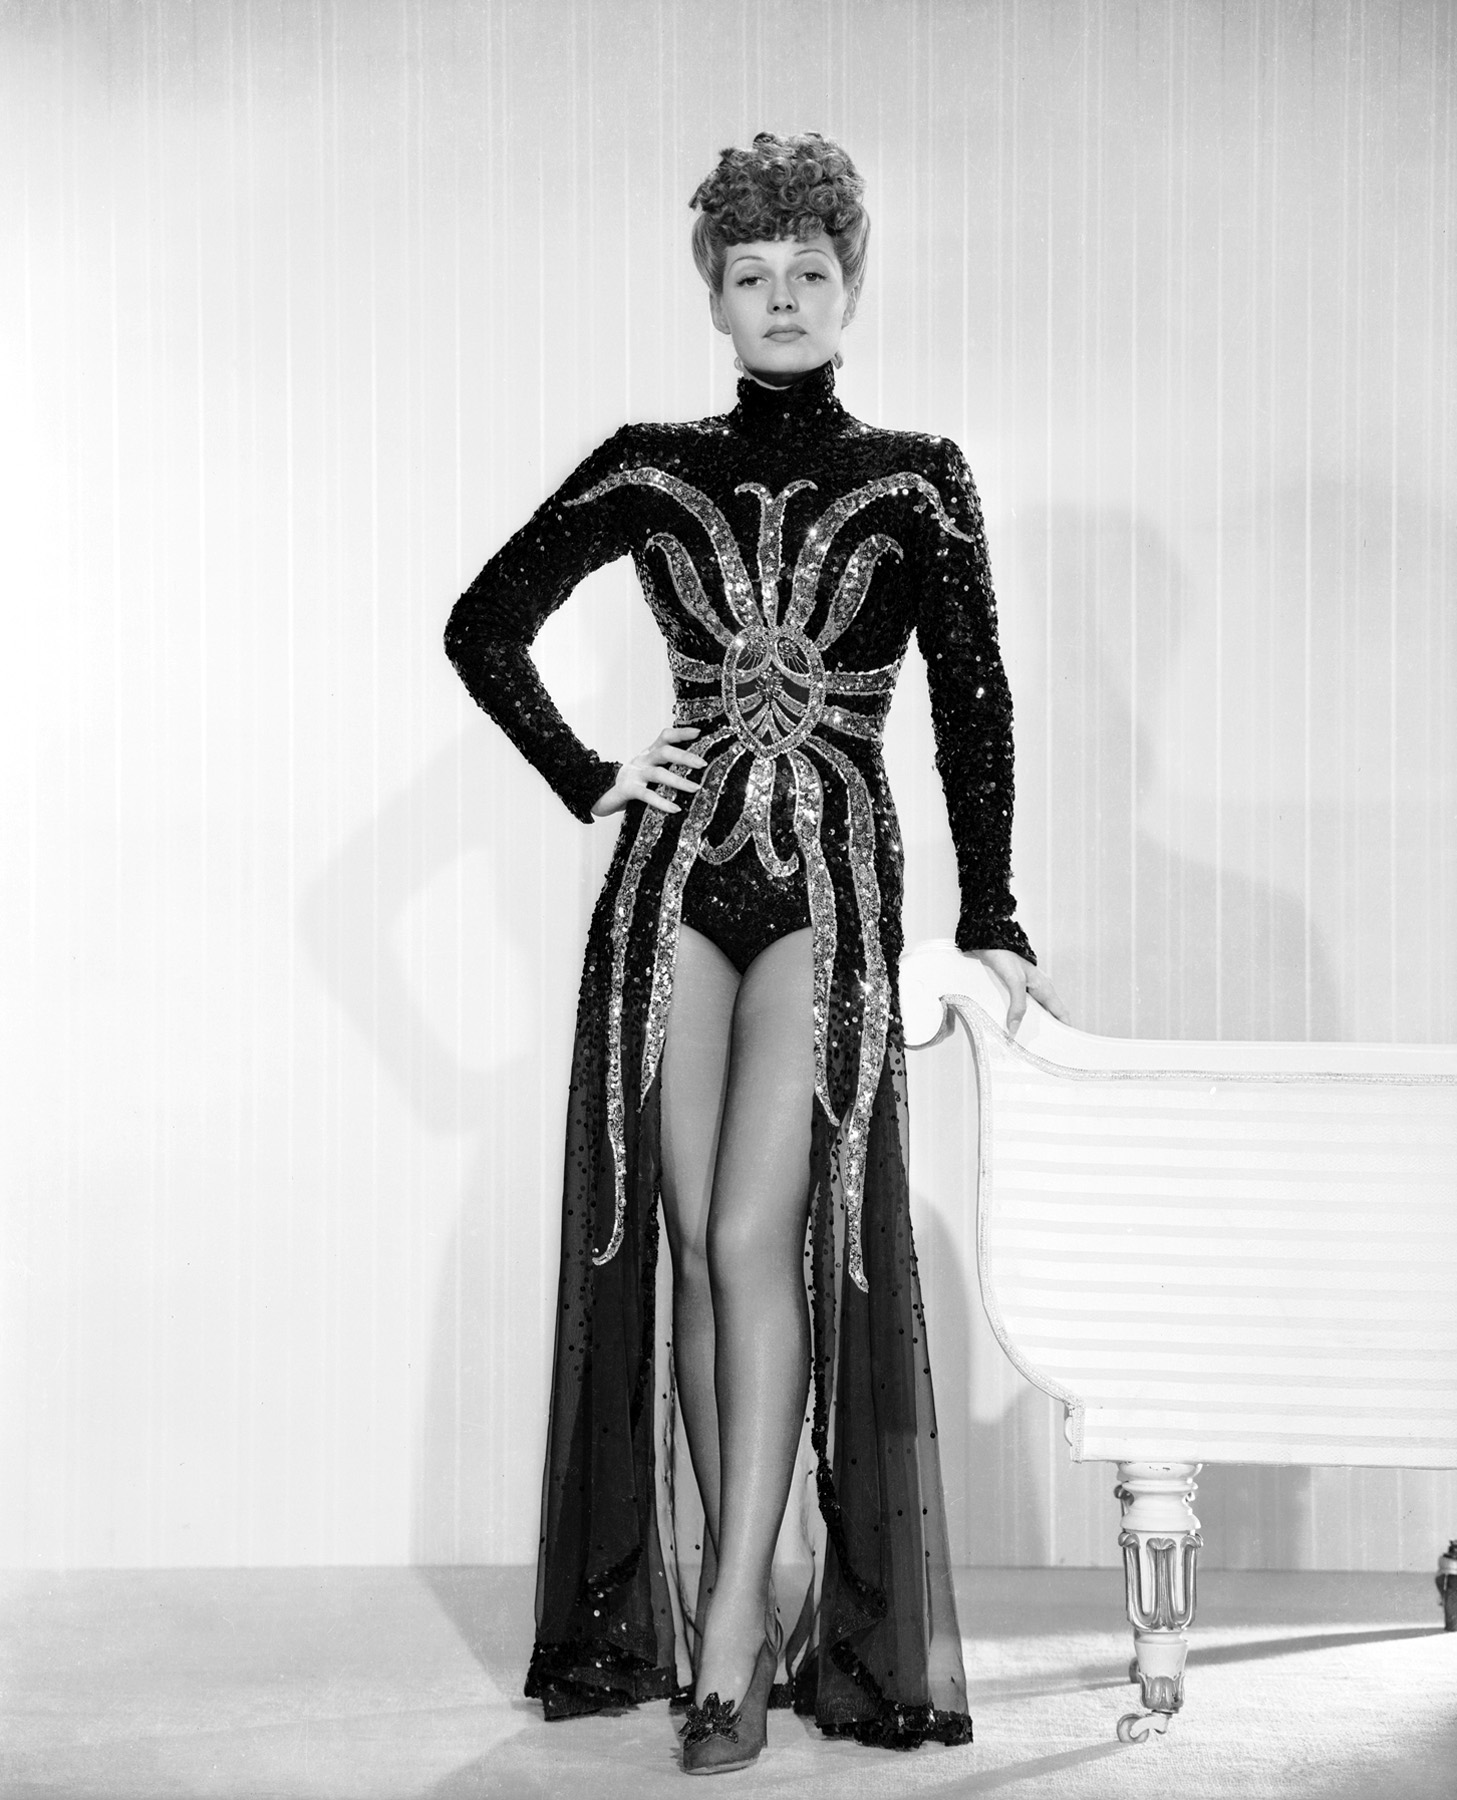 1942: Rita Hayworth (1918 - 1987) models a sequined gown with a spider-like motif in 'My Gal Sal', directed by Irving Cummings.